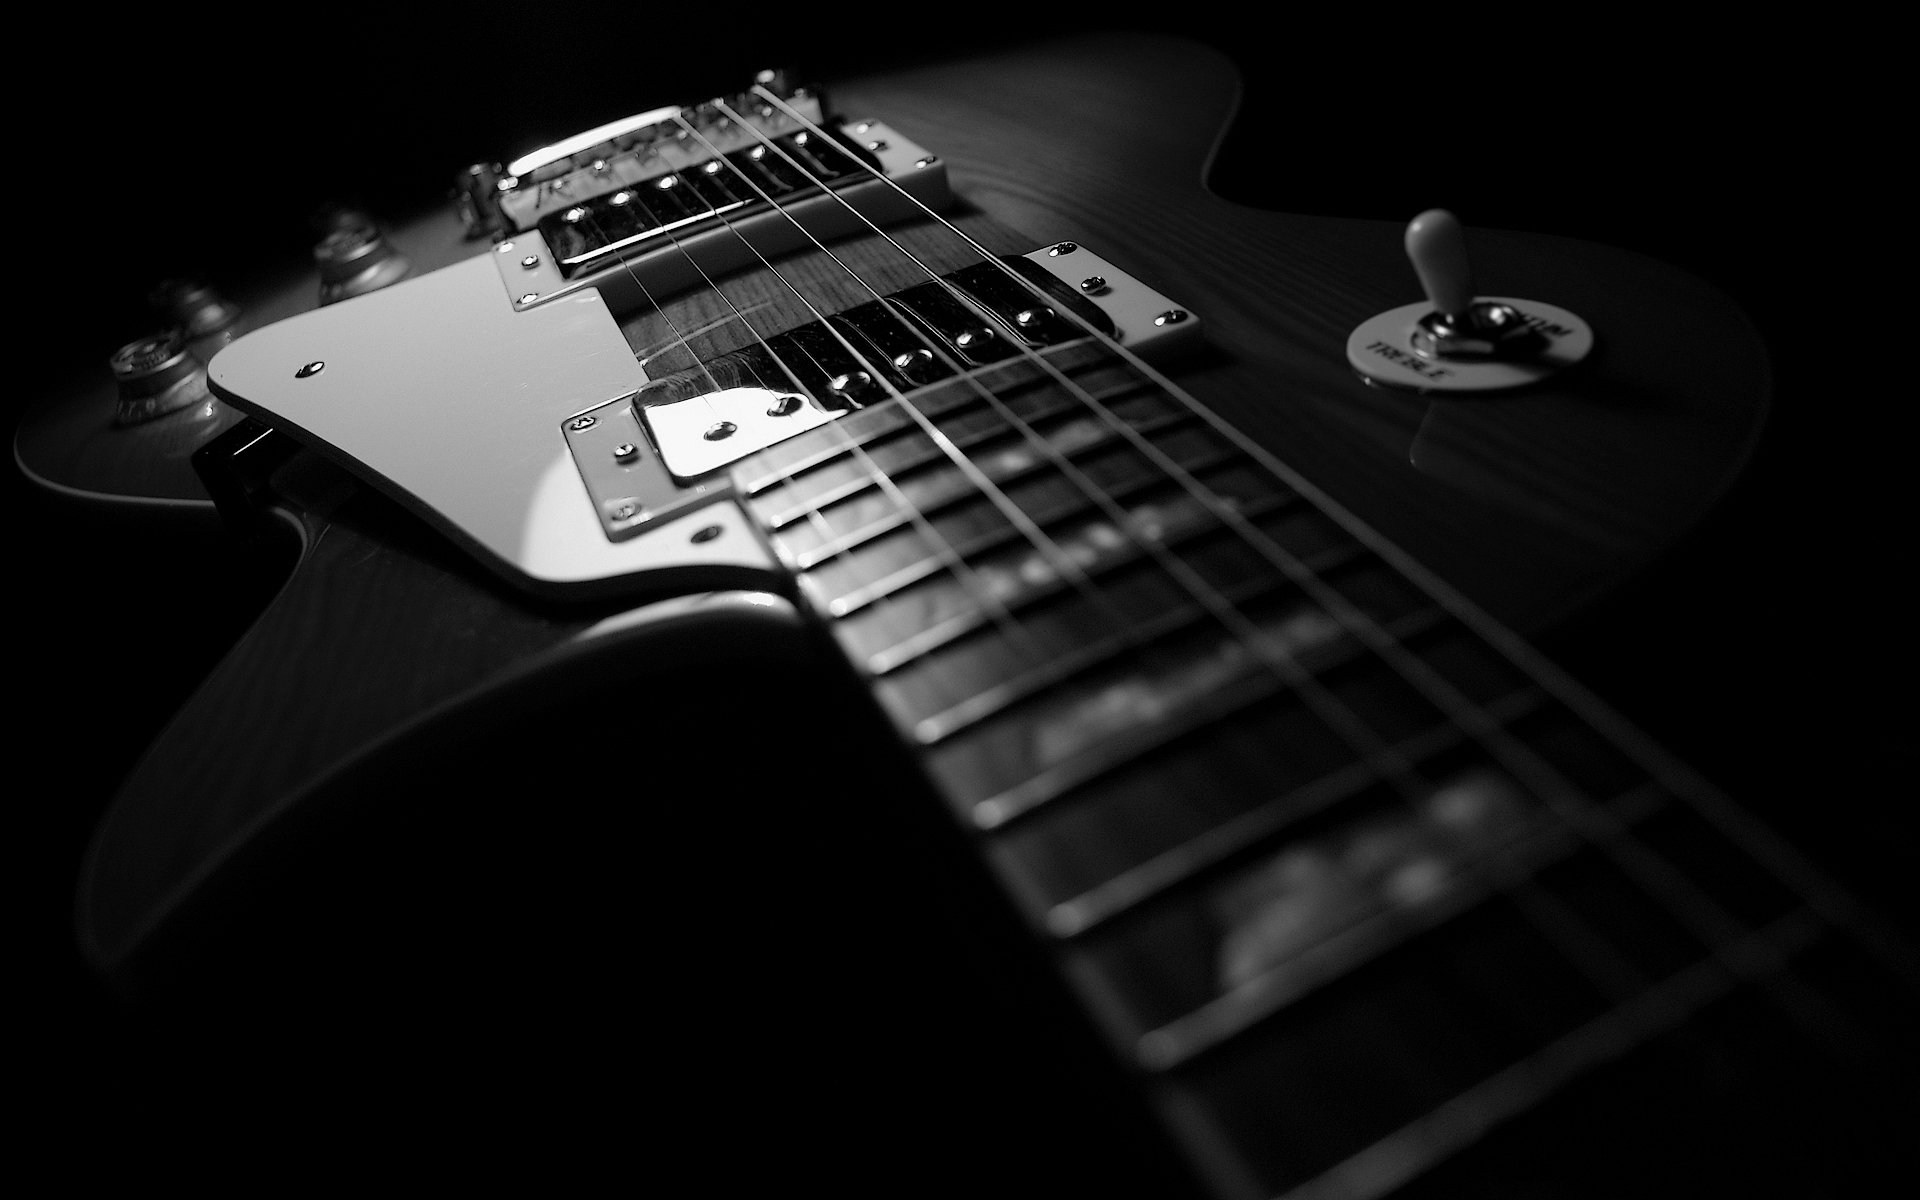 Guitar Wallpaper Black